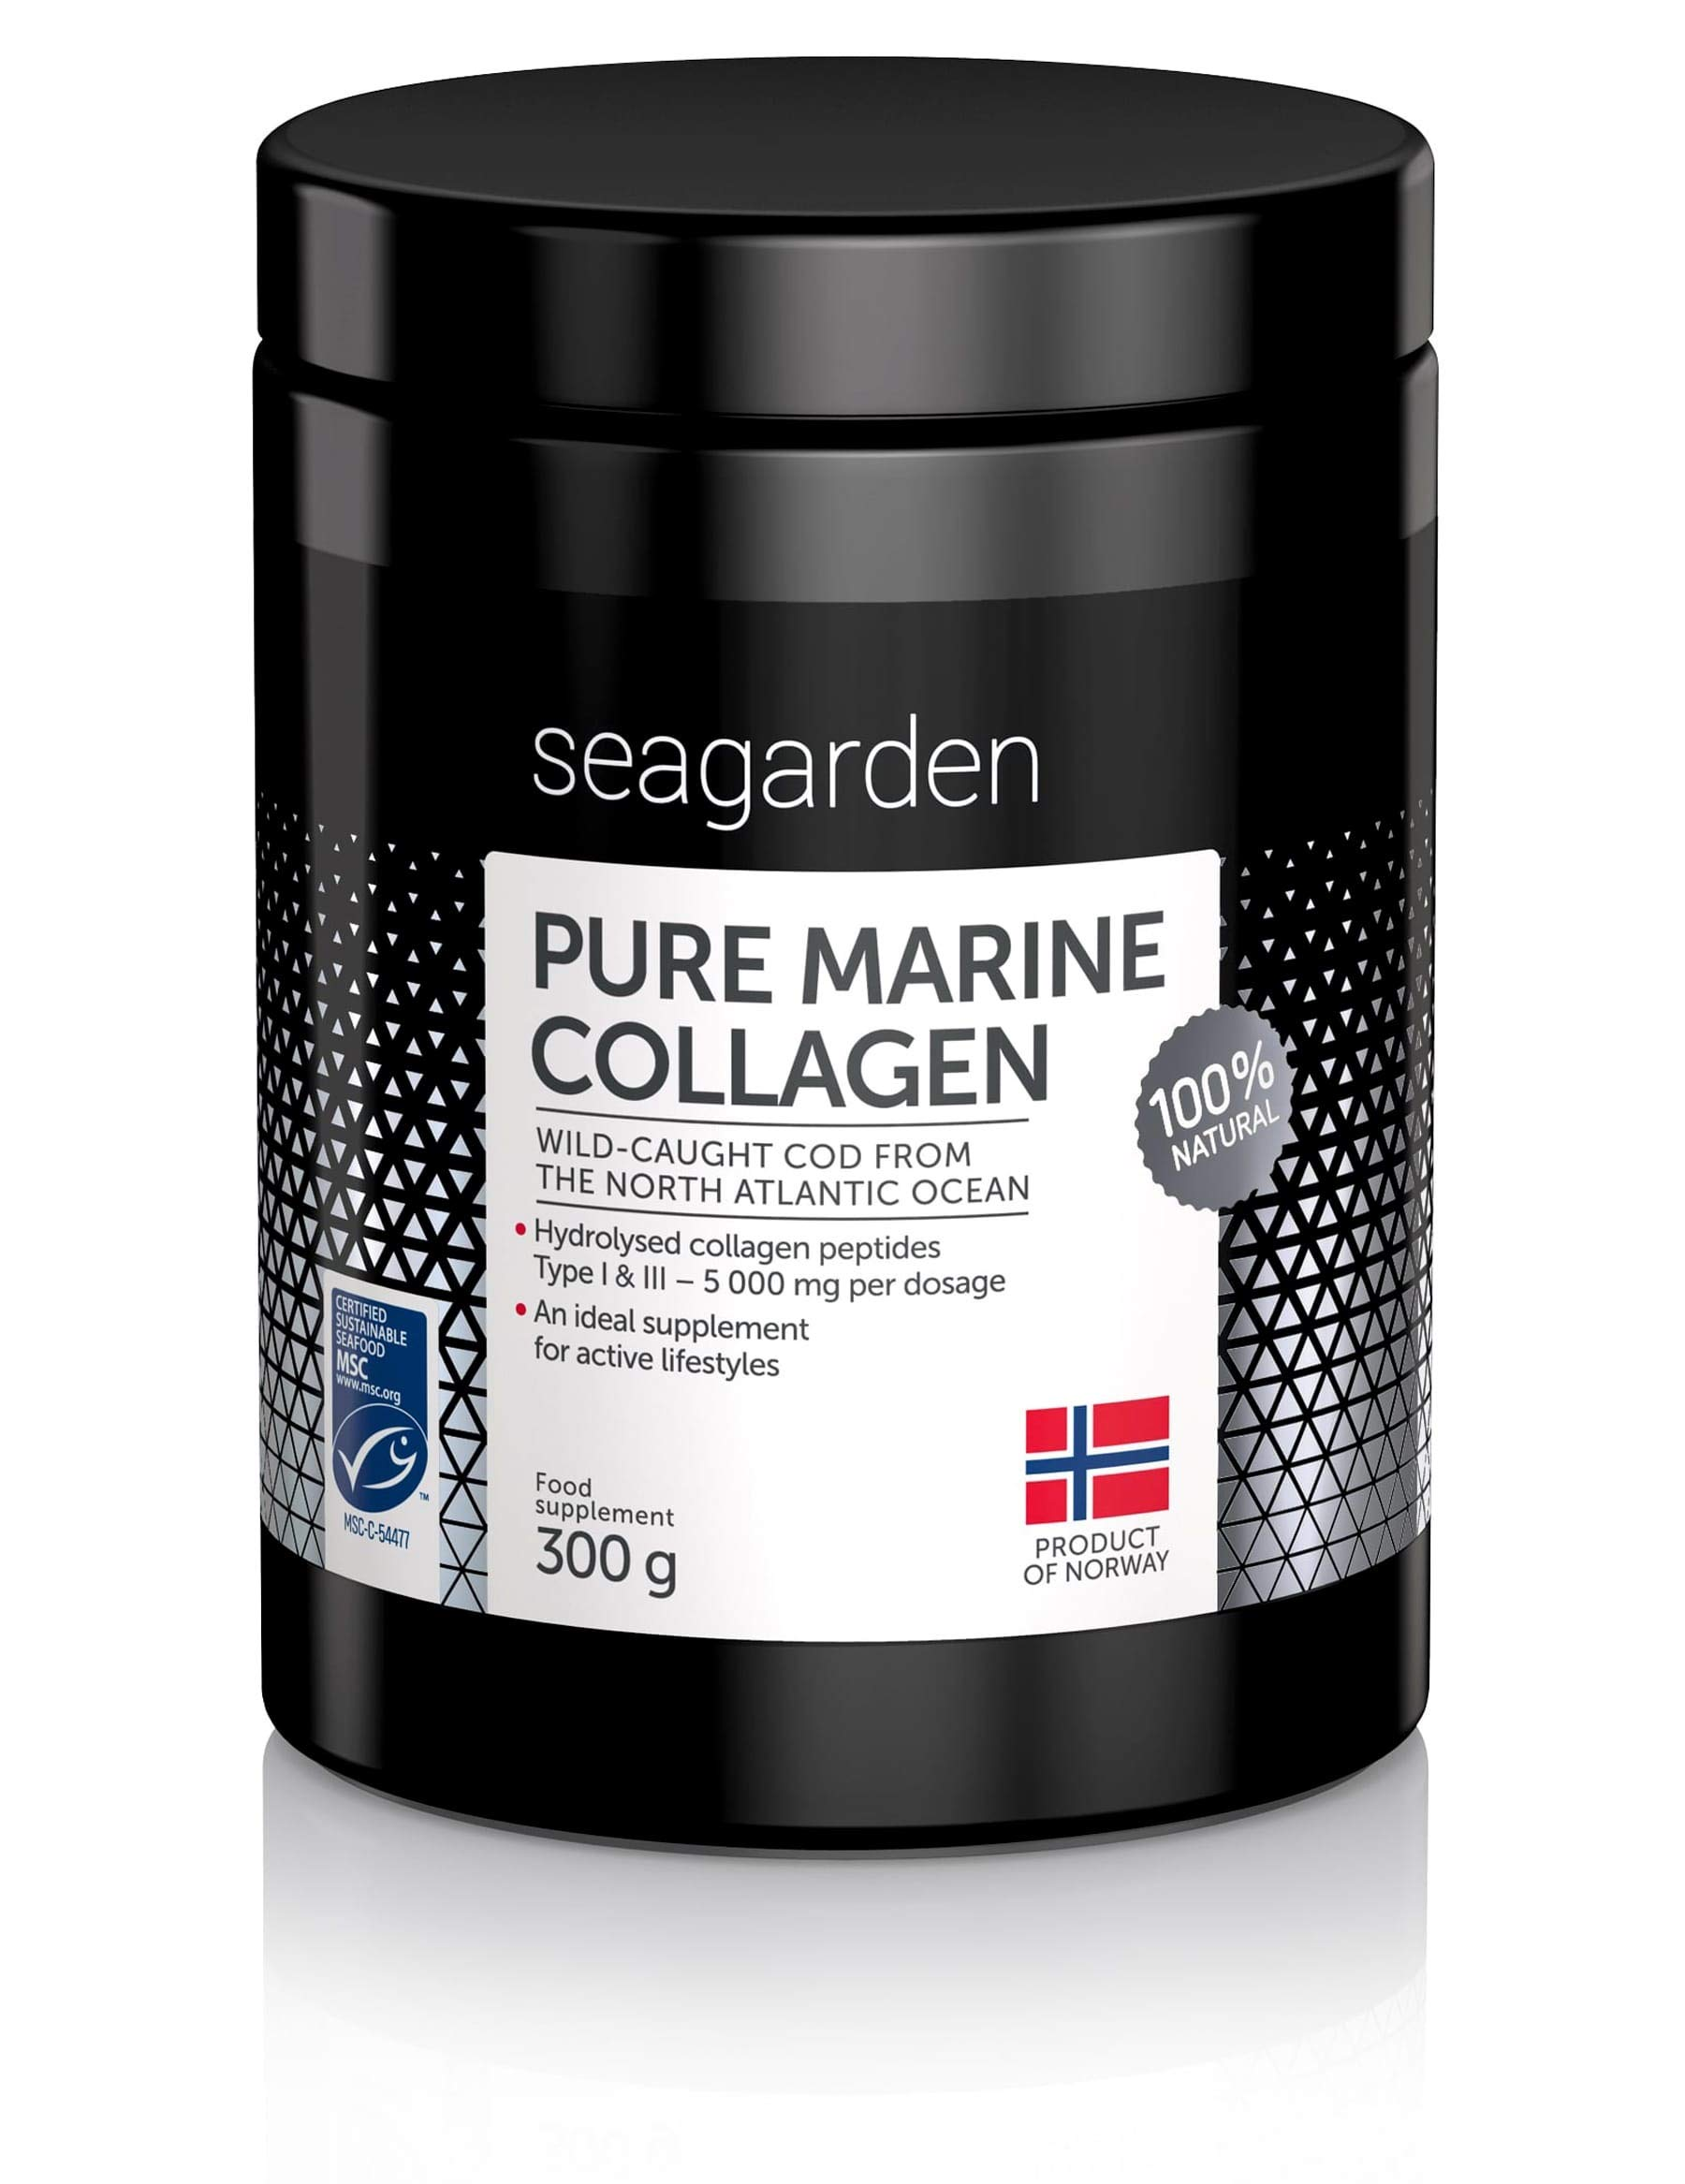 Norwegian Pure Marine Collagen Powder I Wild-Caught Fish from North Atlantic Ocean I 2-Months Supply I Hydrolysate Peptides | Supplement for Skin, Hair, Nails, Tendons, Ligaments |100% Natural I 300 g